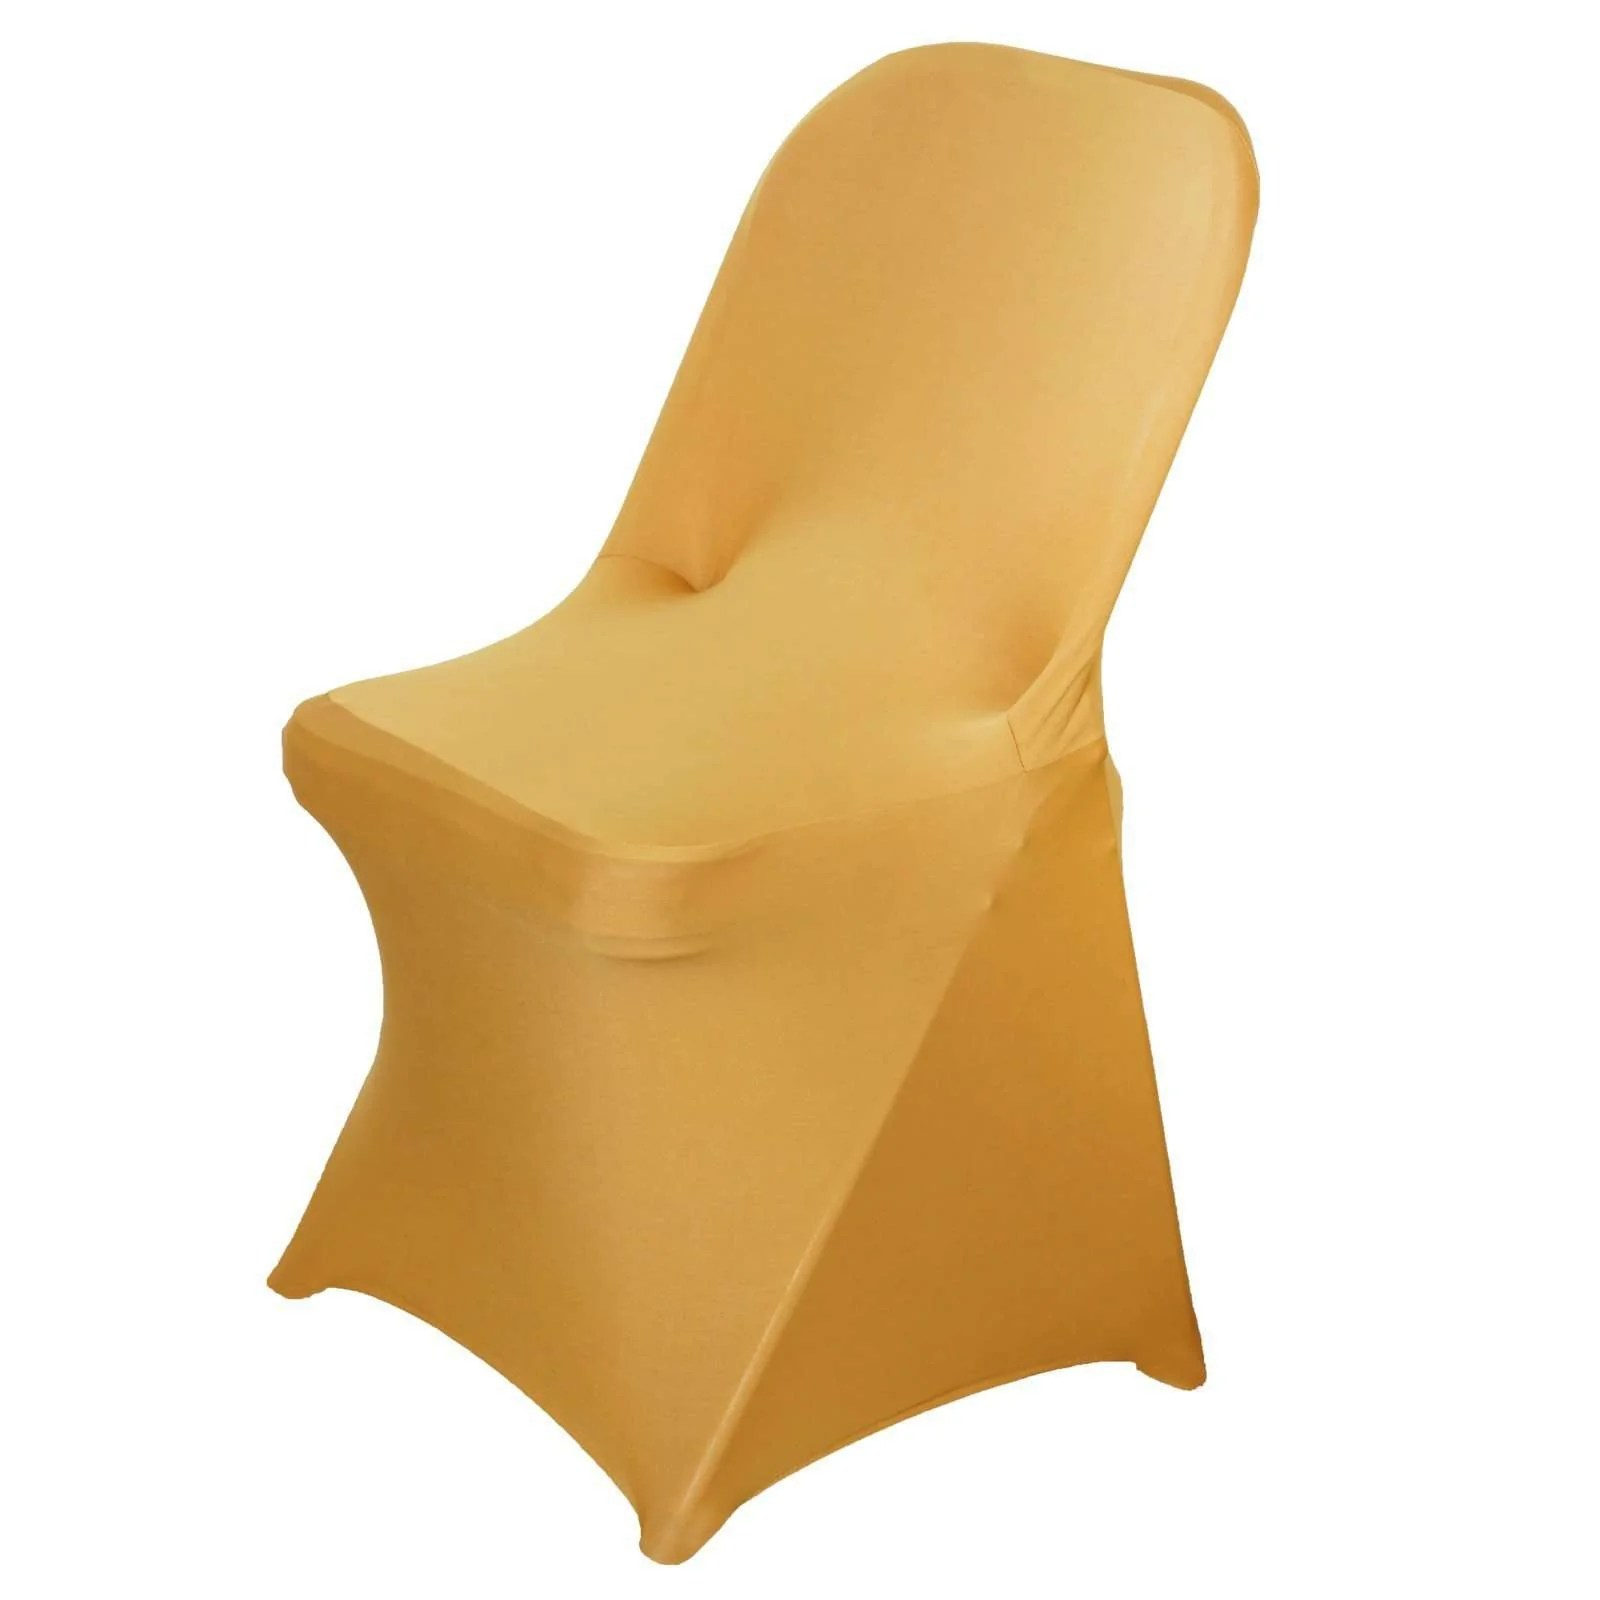 stretch chair covers for folding chairs lightweight deck wholesale gold spandex cover wedding party